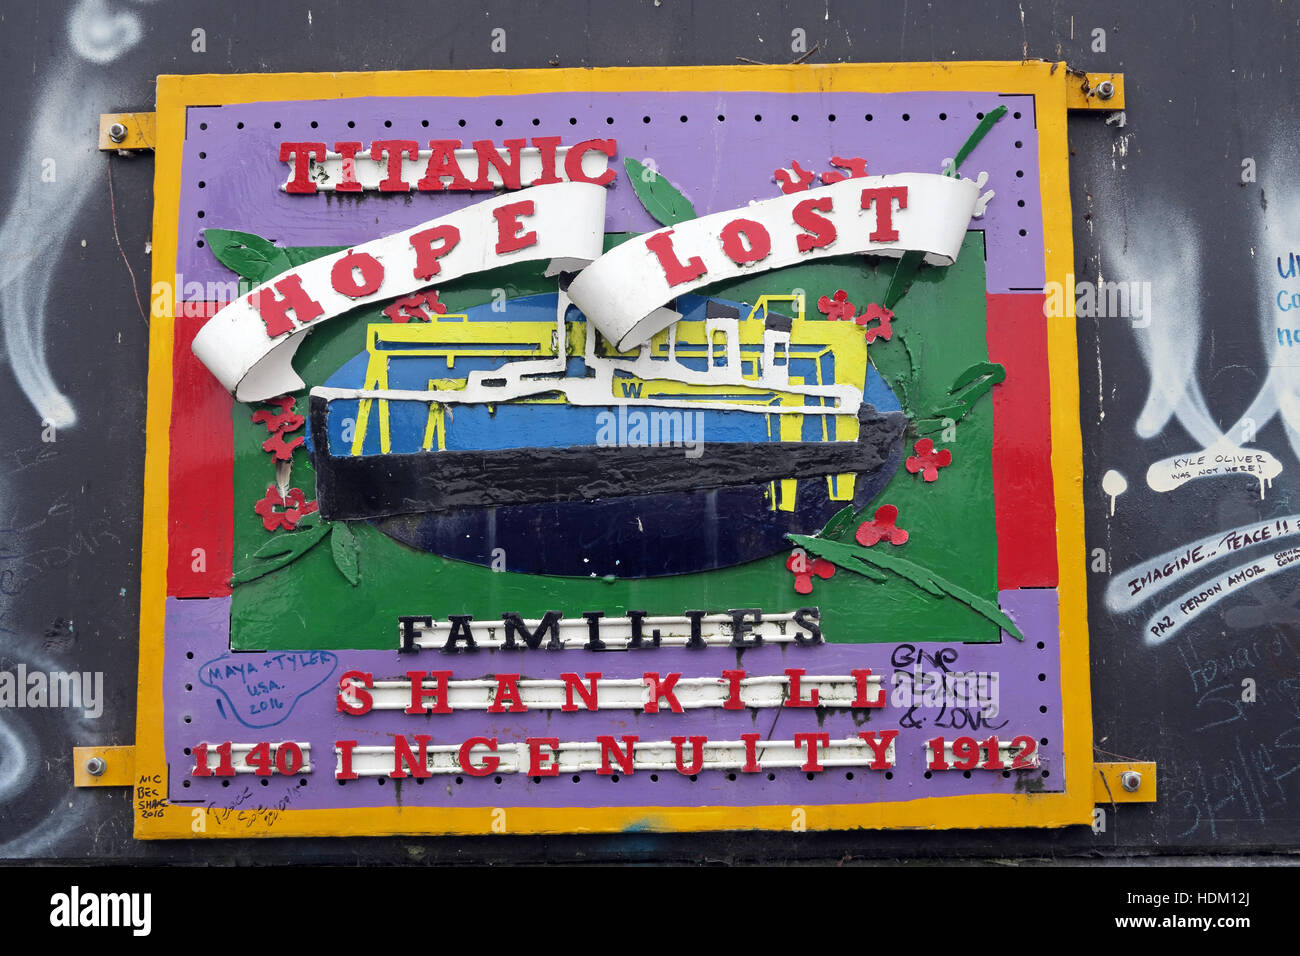 Titanic Hope Lost - Belfast International Peace Wall,Cupar way,West Belfast,NI,UK Stock Photo